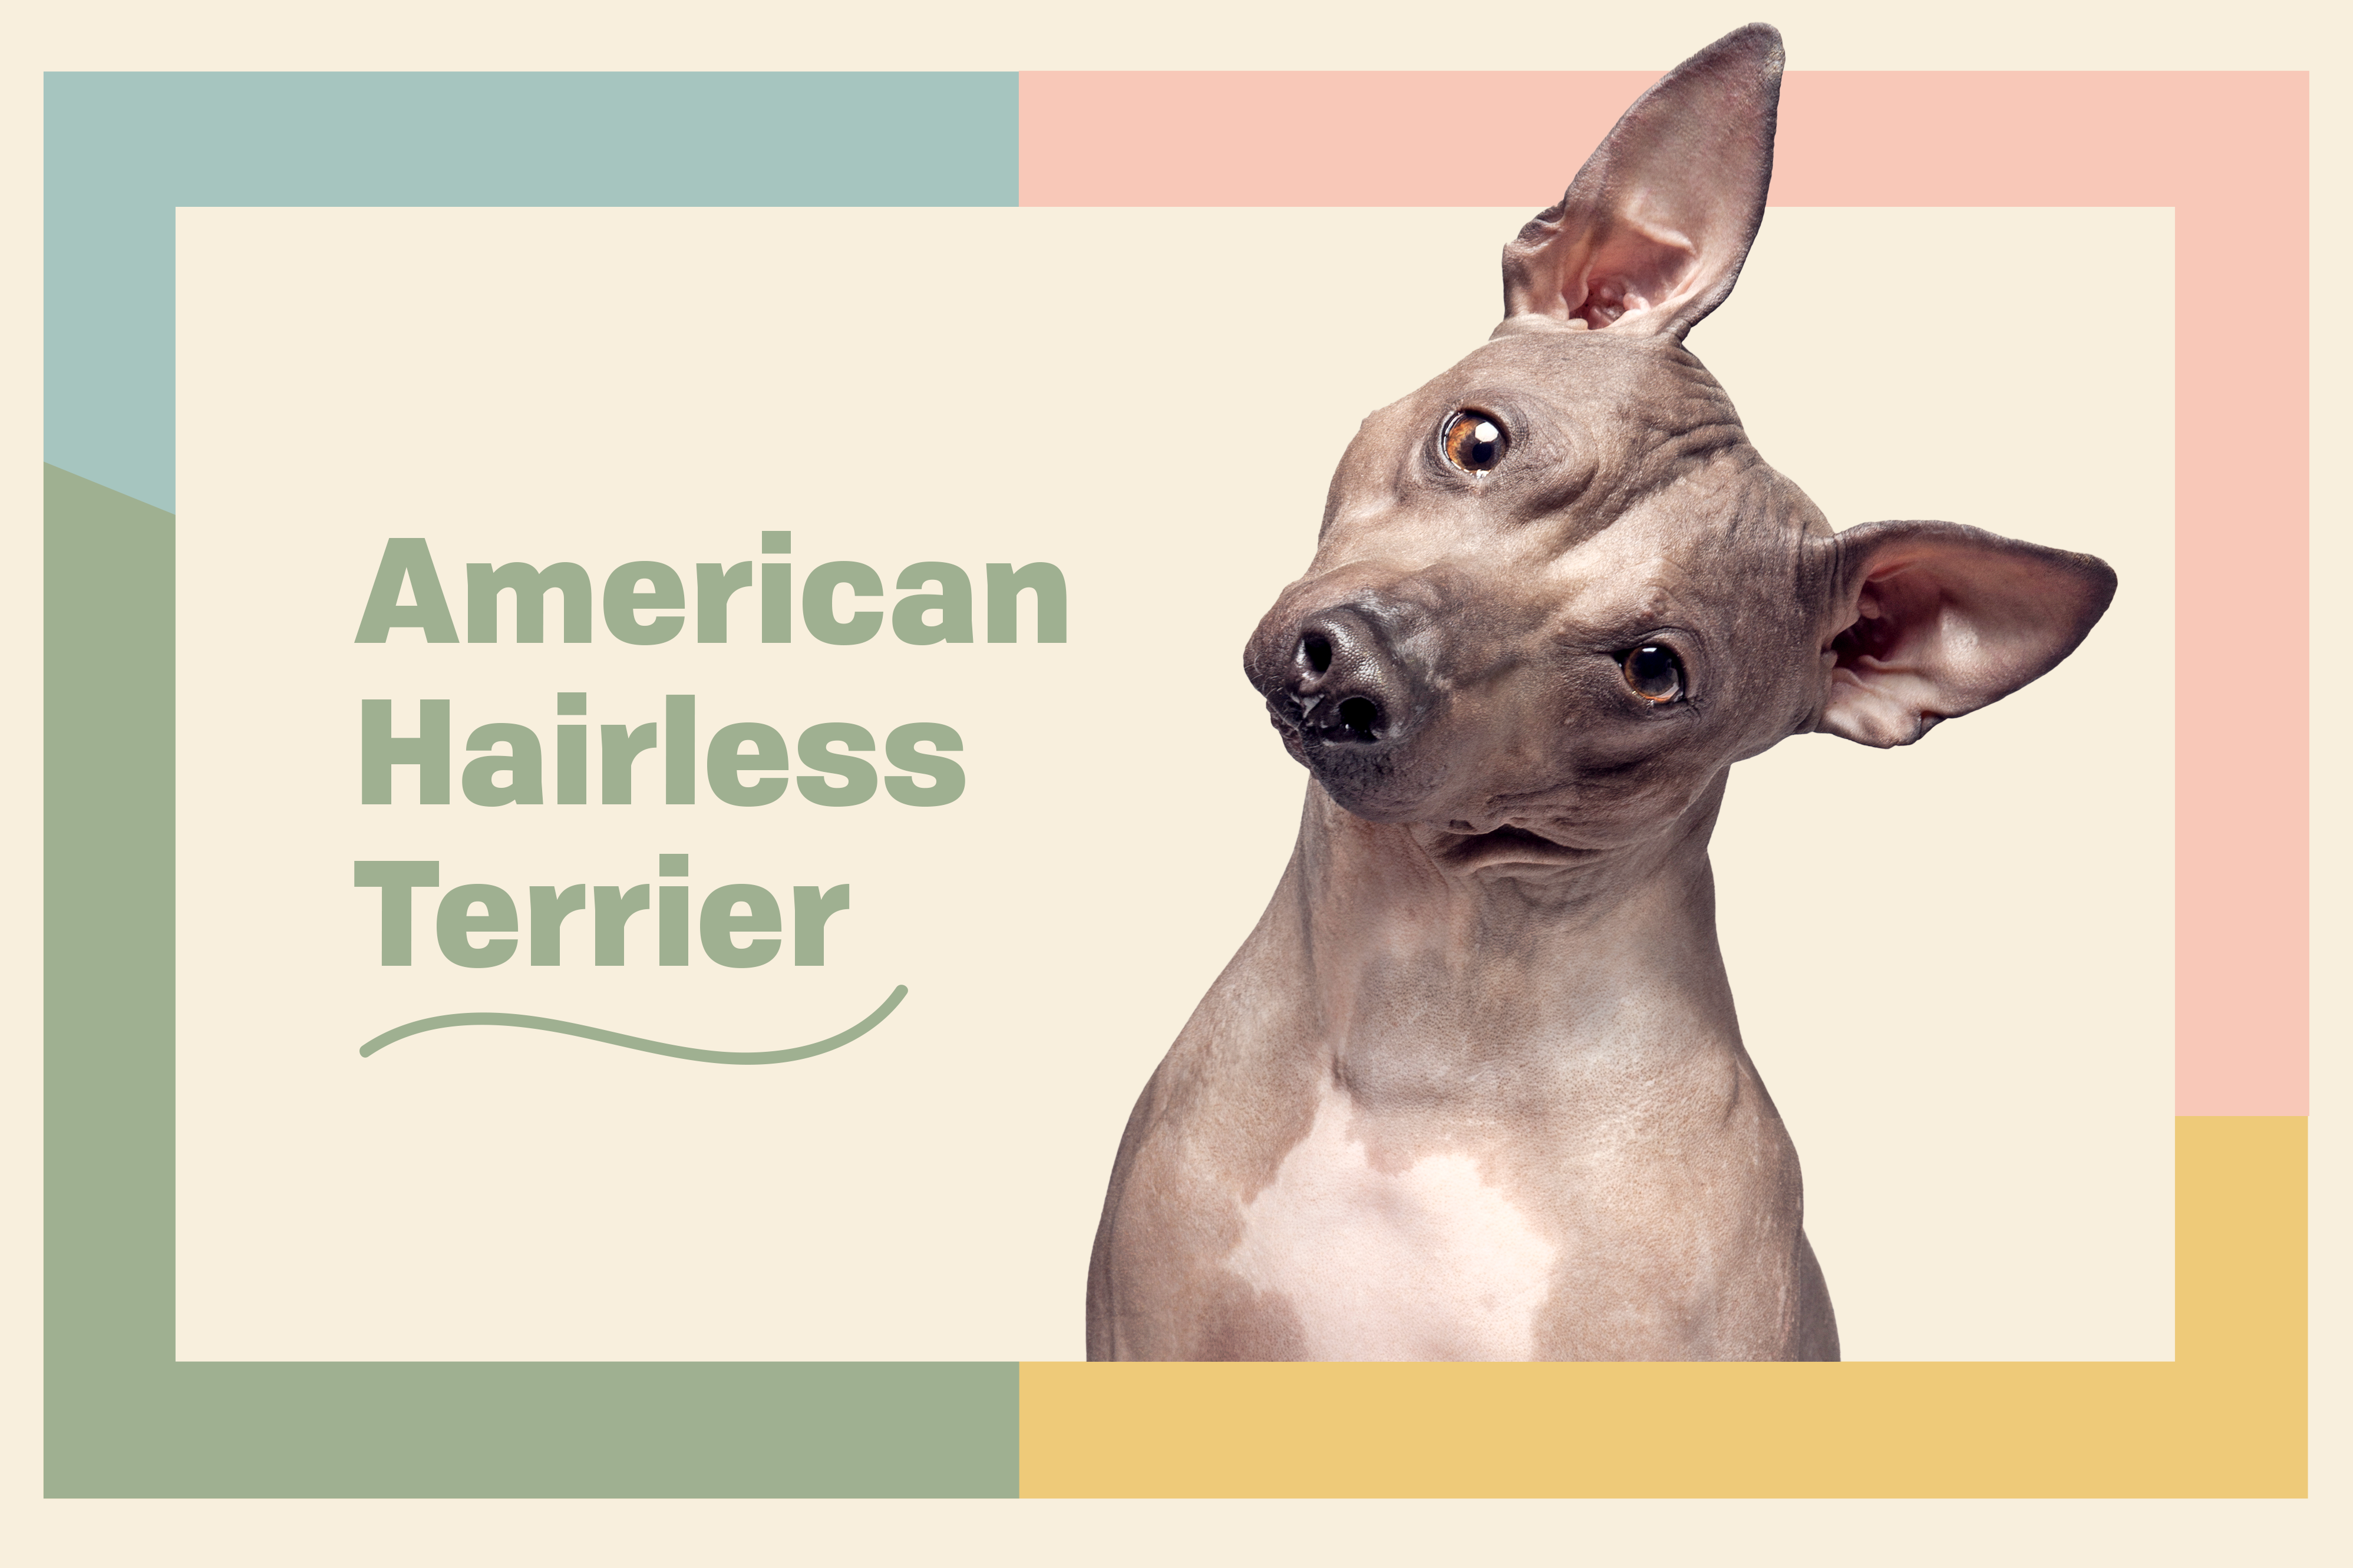 American Hairless Terrier dog breed profile treatment dog with tilted head on a yellow background